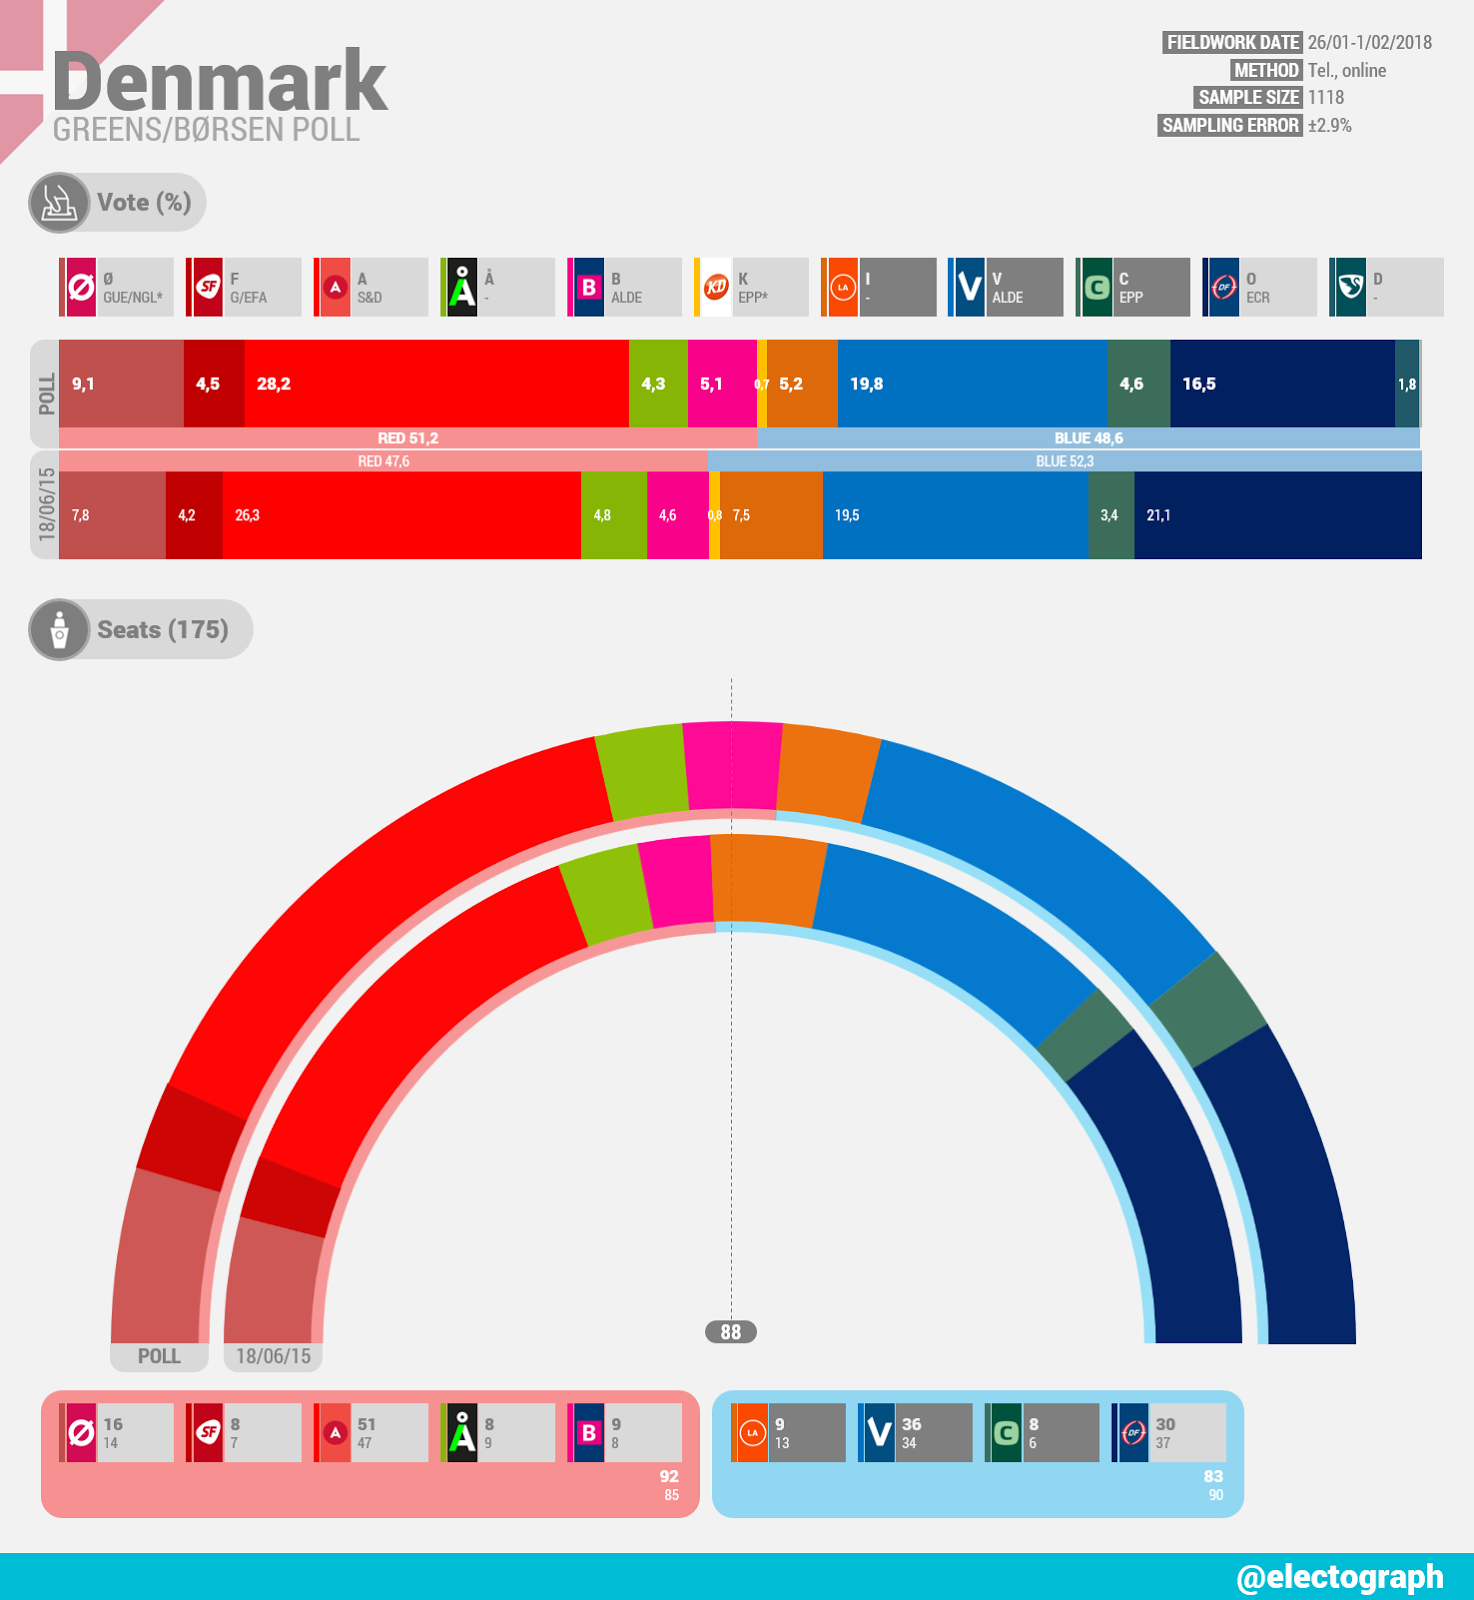 DENMARK Greens poll chart for Børsen, February 2018